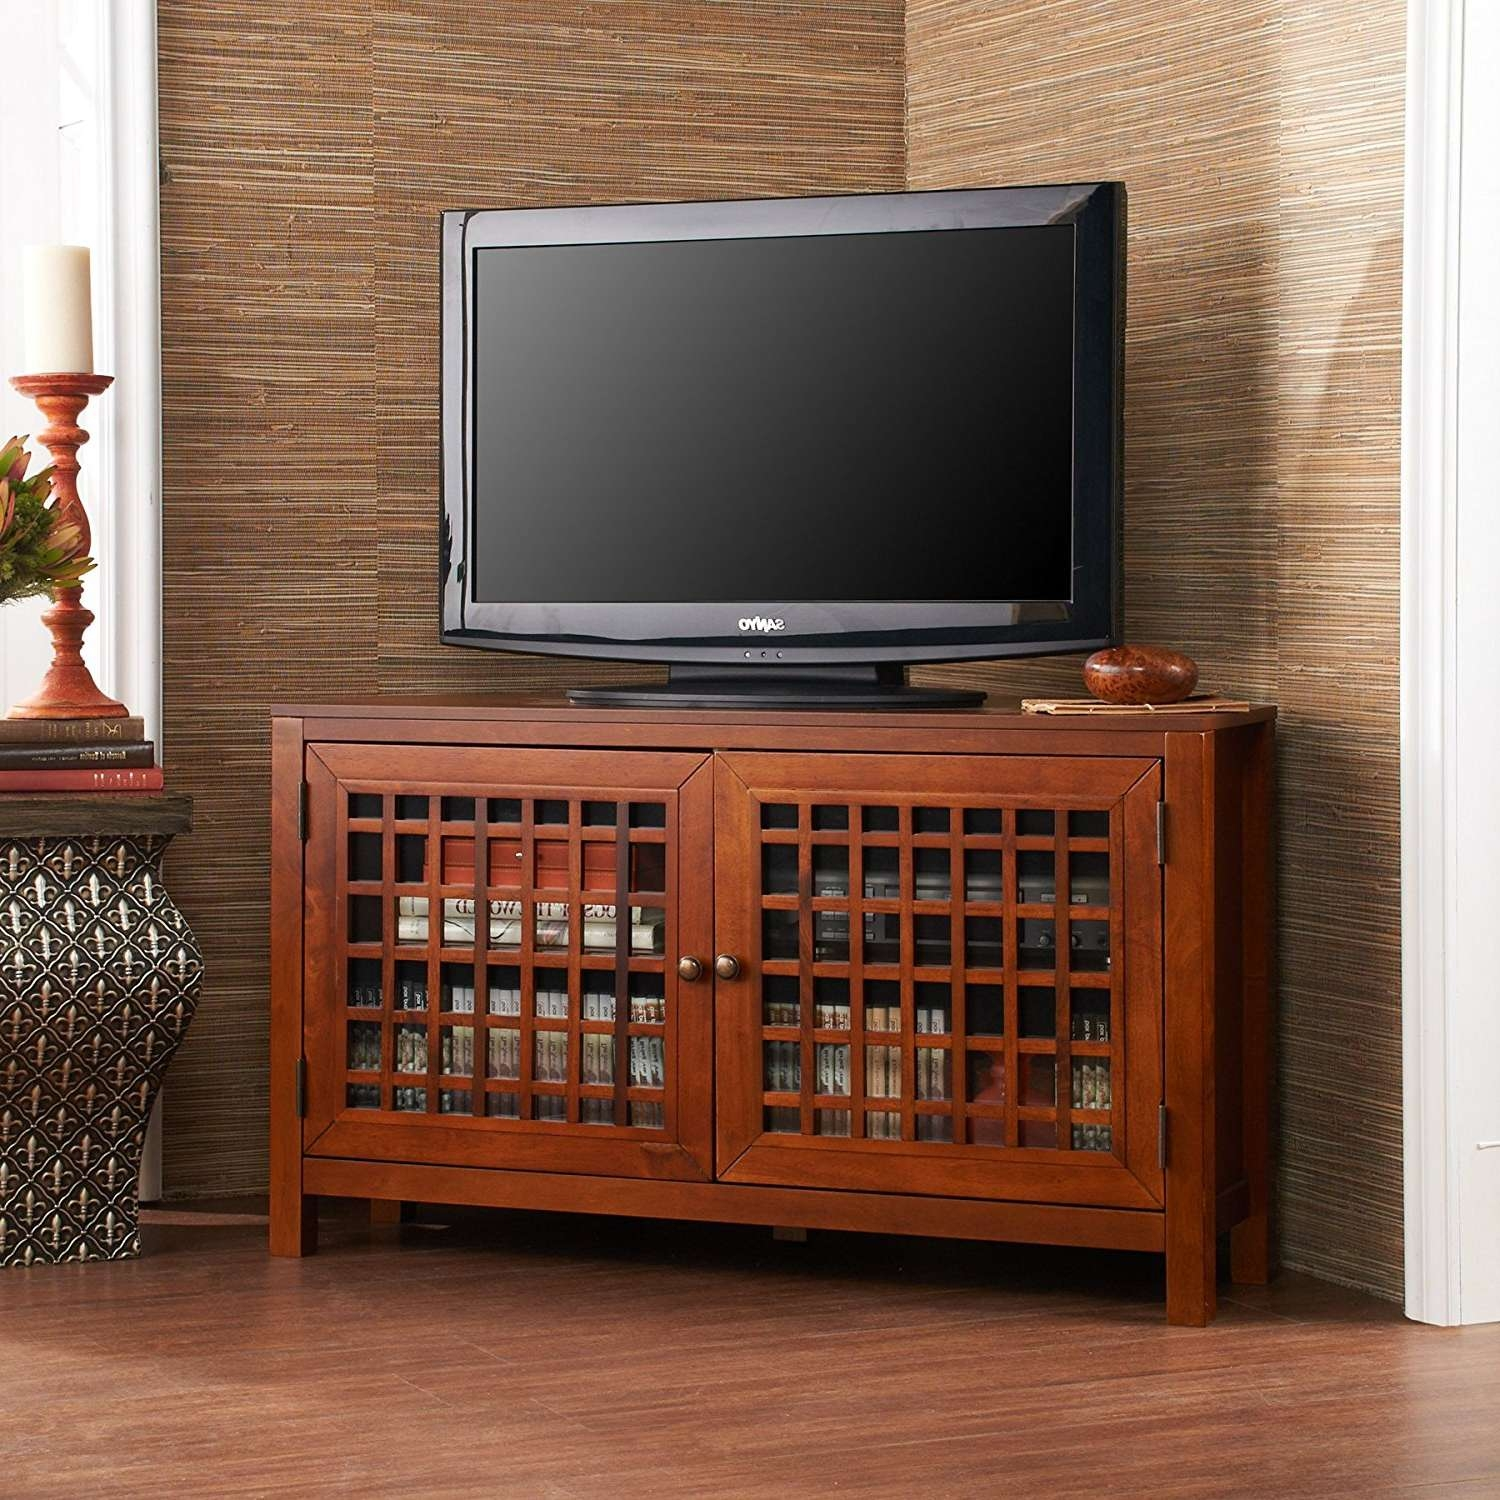 Amazoncom Narita Corner Media Stand Walnut Kitchen Dining Storage With Regard To Corner Tv Cabinets For Flat Screens With Doors (View 1 of 20)